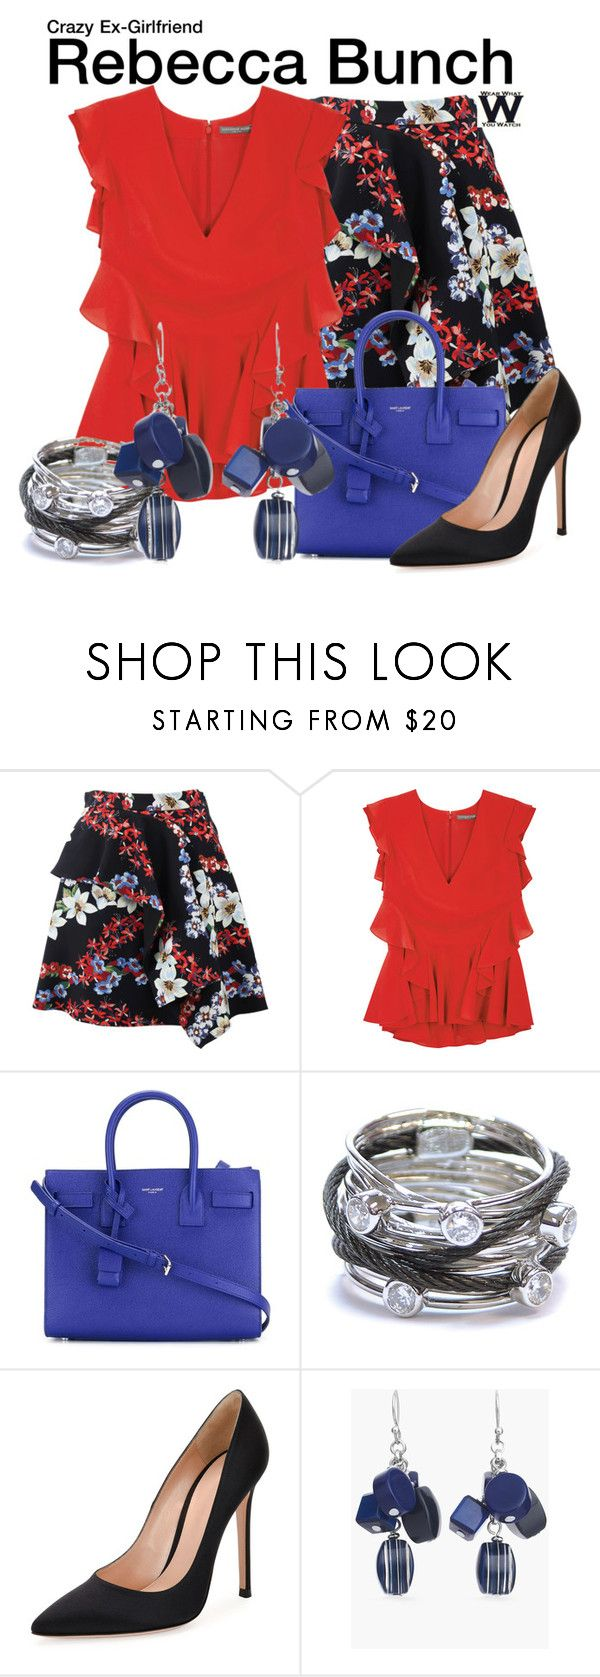 """Crazy Ex-Girlfriend"" by wearwhatyouwatch ❤ liked on Polyvore featuring MSGM, Alexander McQueen, Yves Saint Laurent, Charriol, Gianvito Rossi, Chico's, television and wearwhatyouwatch"